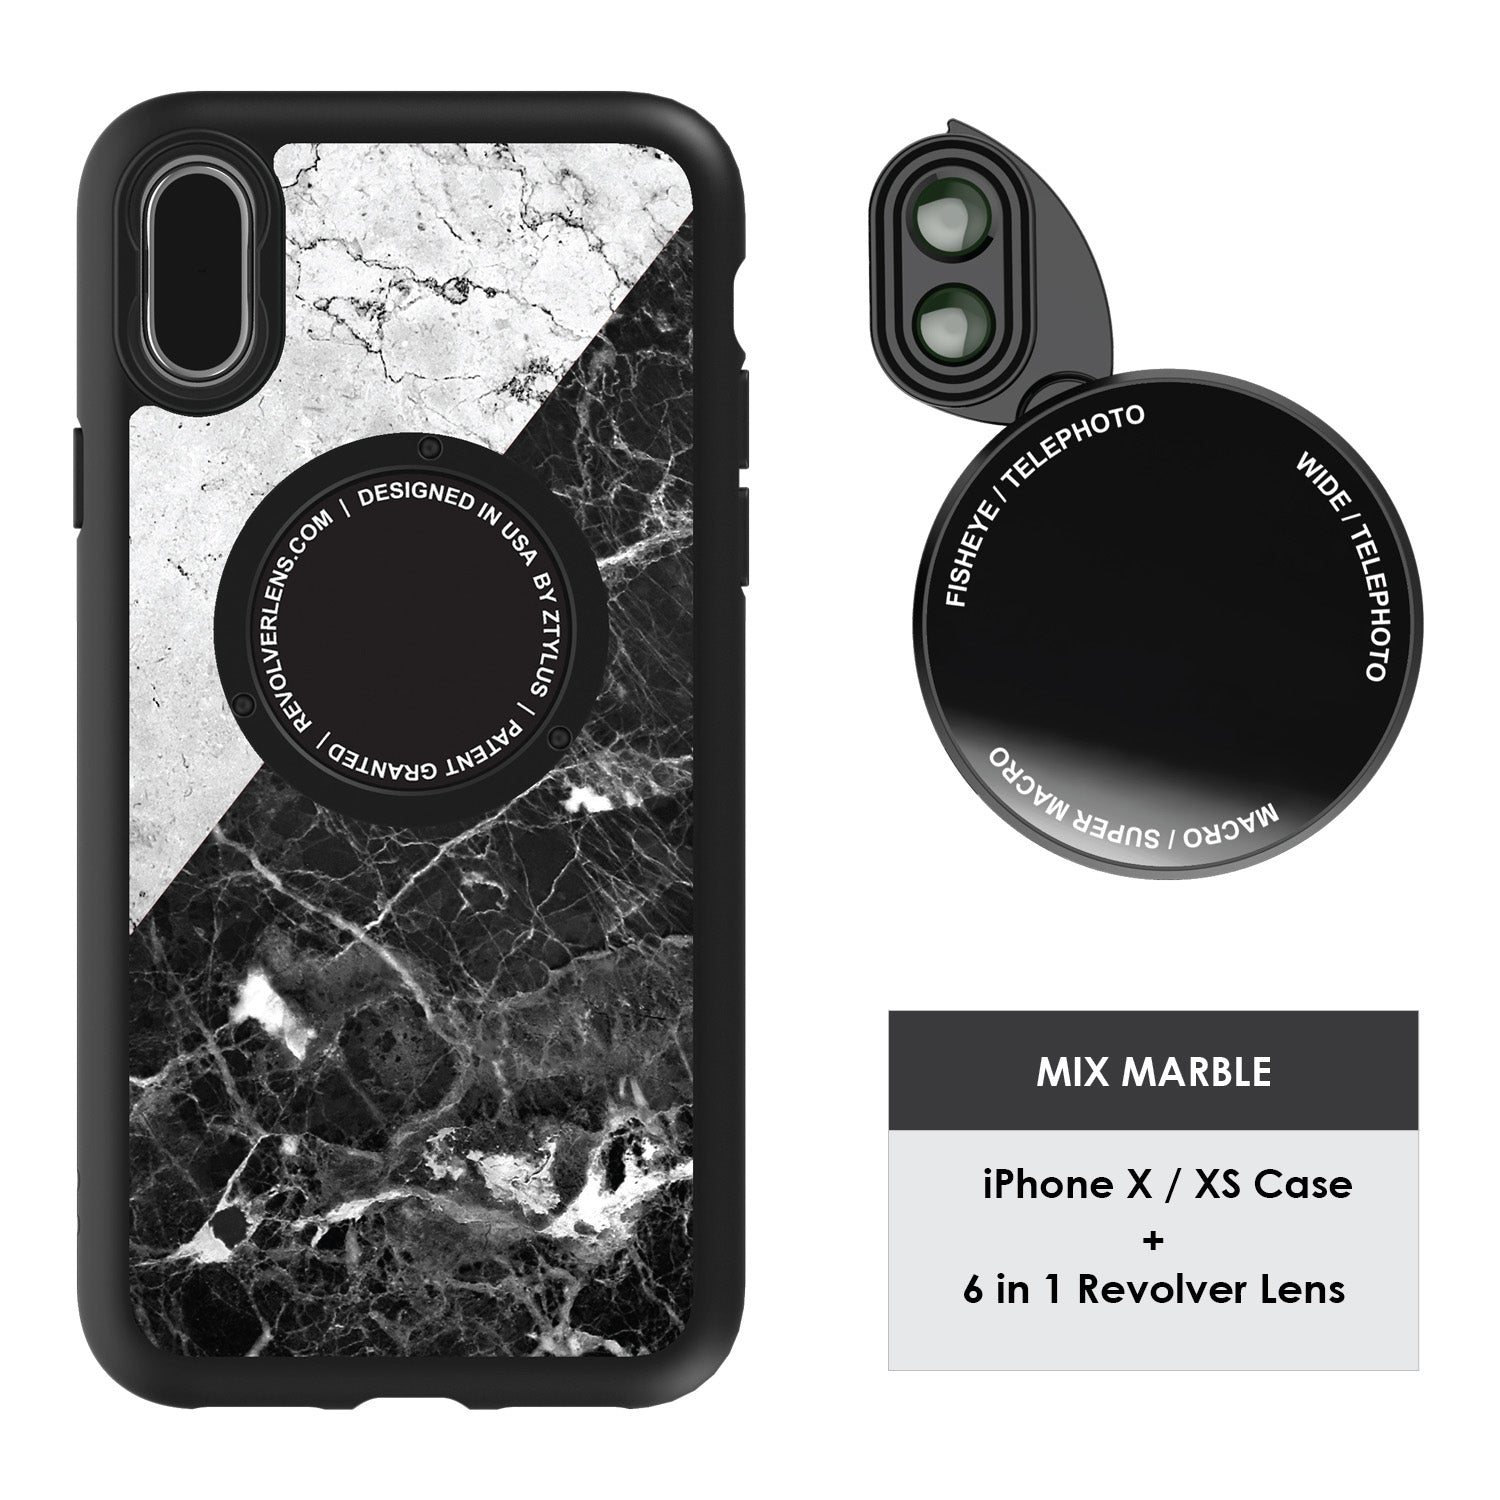 iPhone X / XS Revolver M Series Lens Kit - Mix Marble